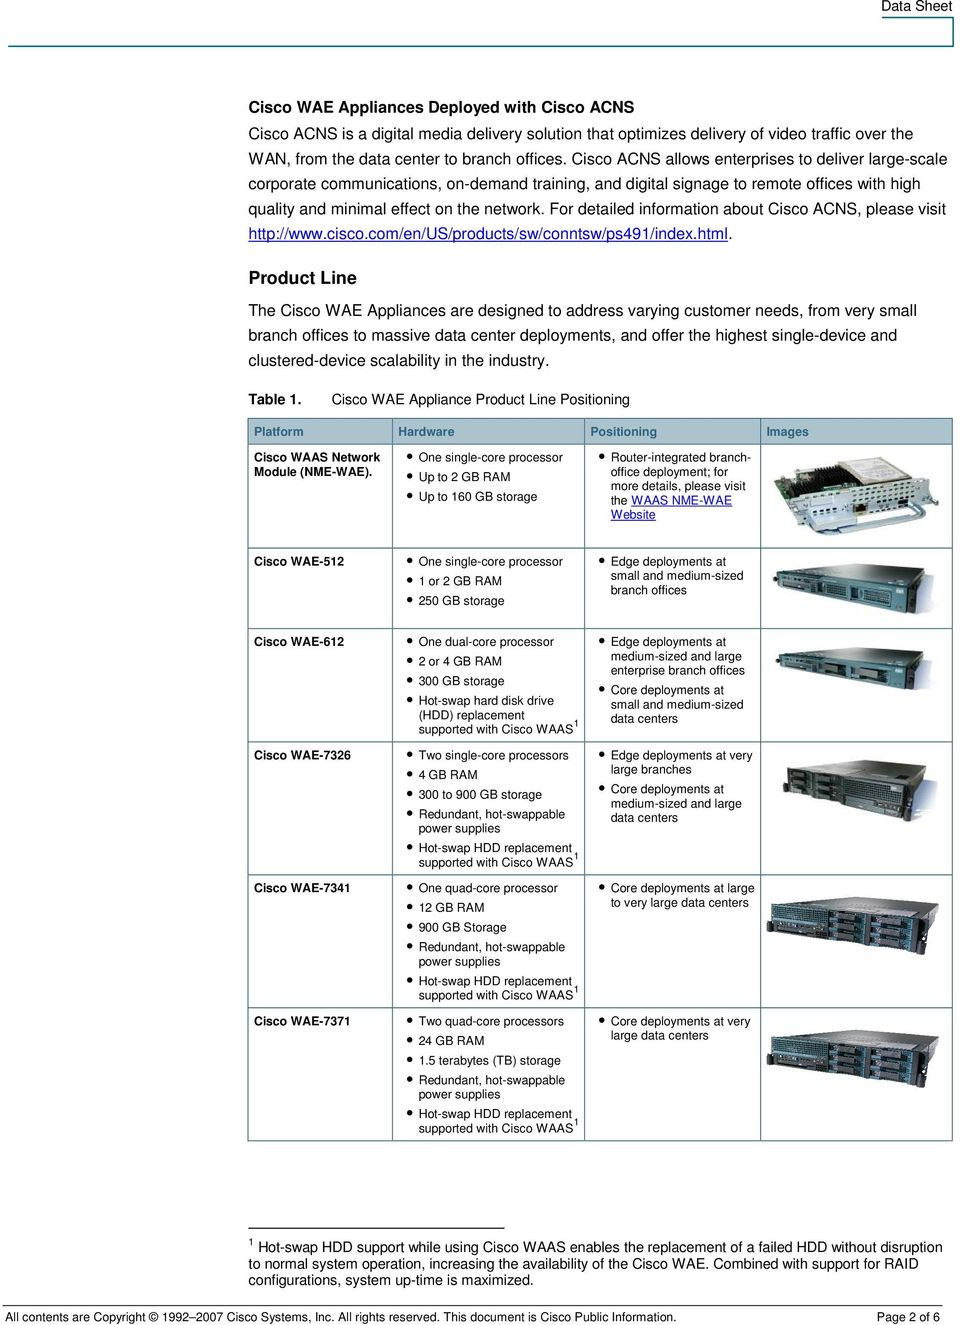 For detailed information about Cisco CNS, please visit http://www.cisco.com/en/us/products/sw/conntsw/ps491/index.html.